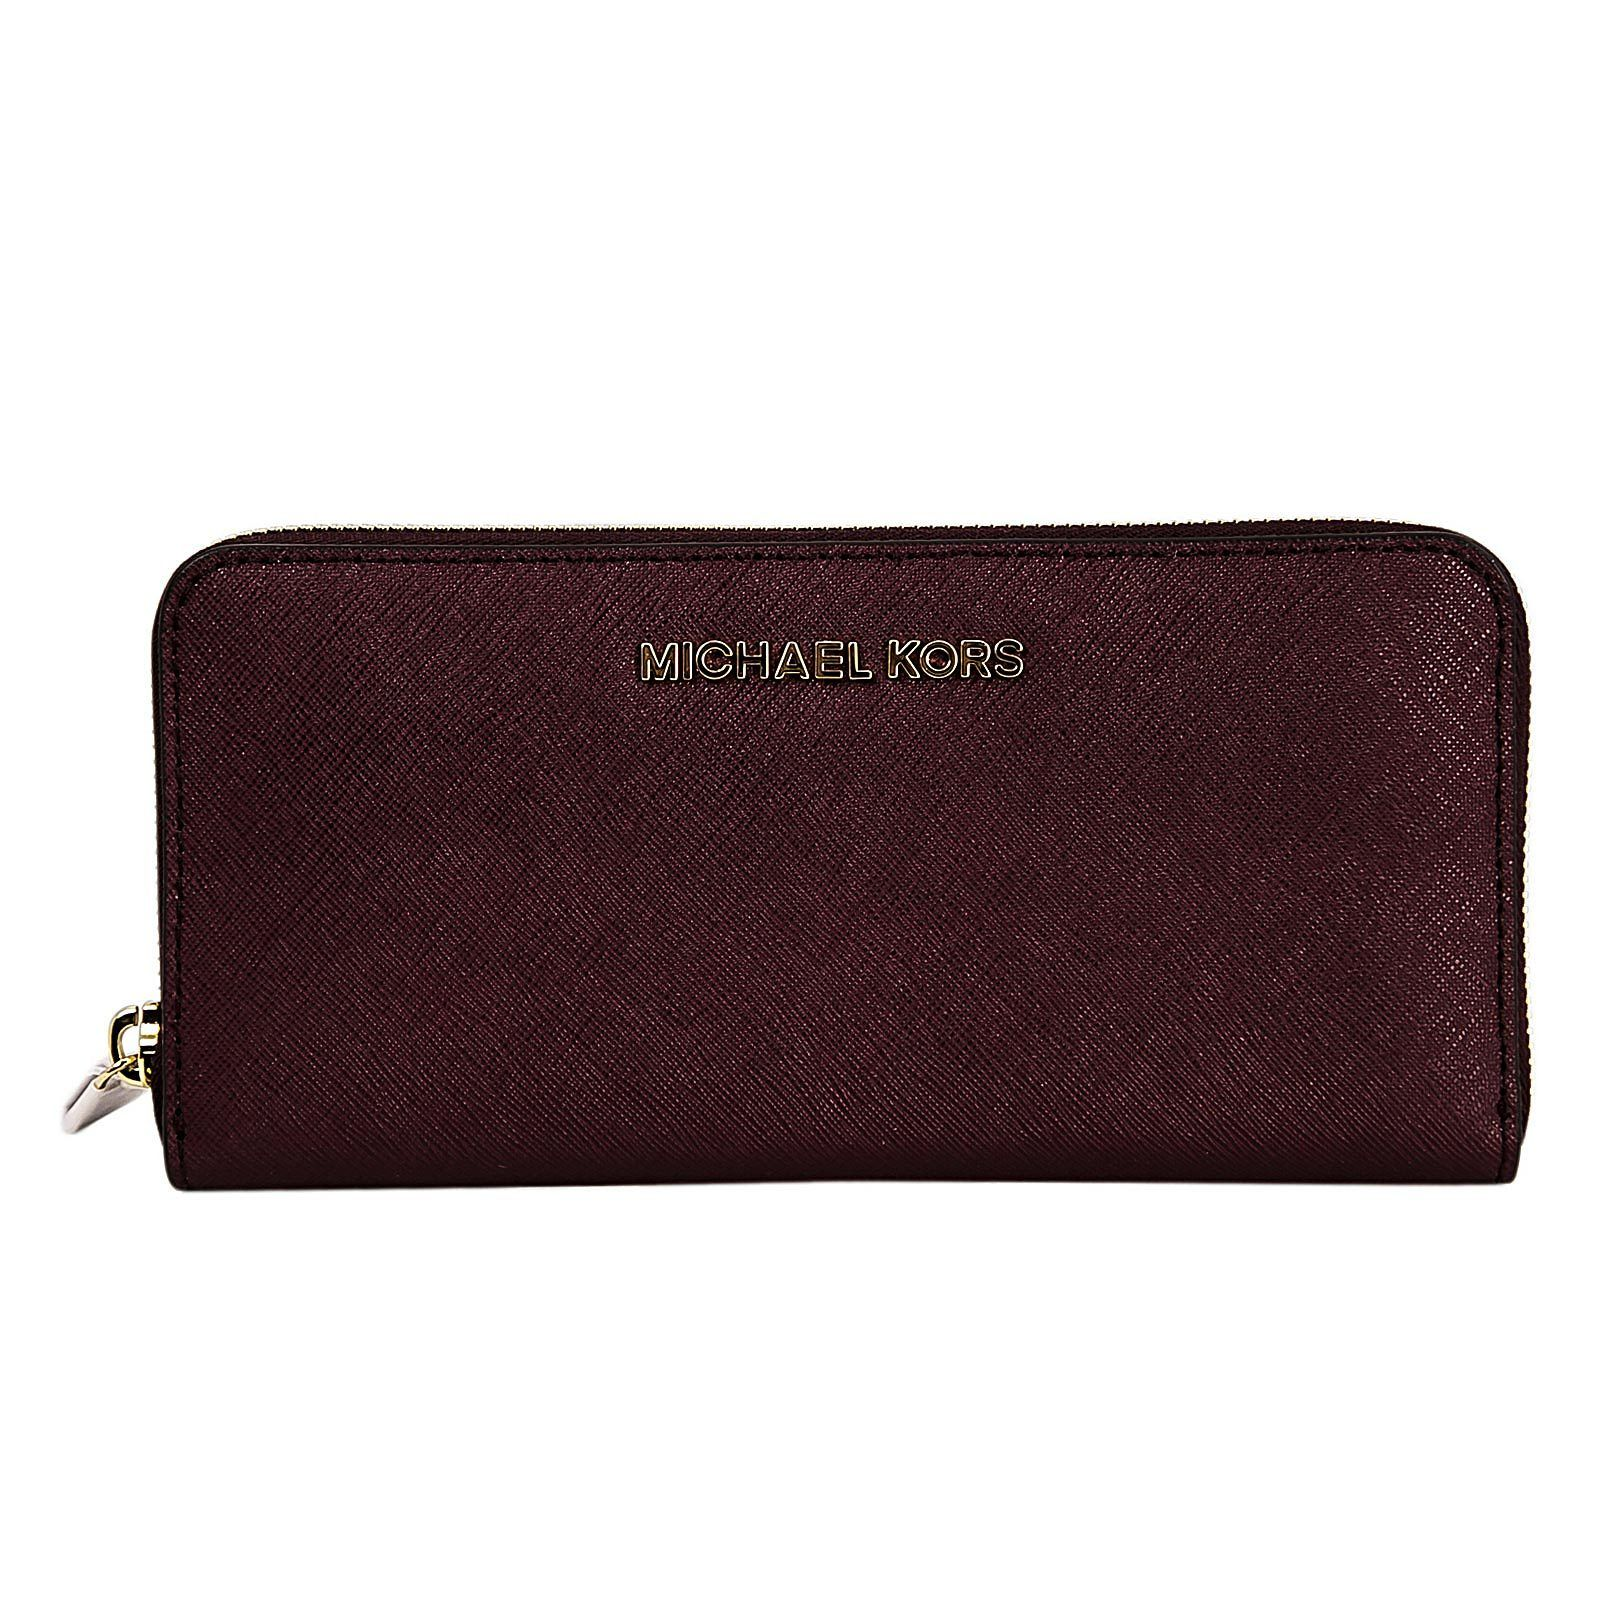 d1370ae78467 Michael Kors Women's Saffiano Leather Continental Wallet - Jet Set Travel Zip  Around